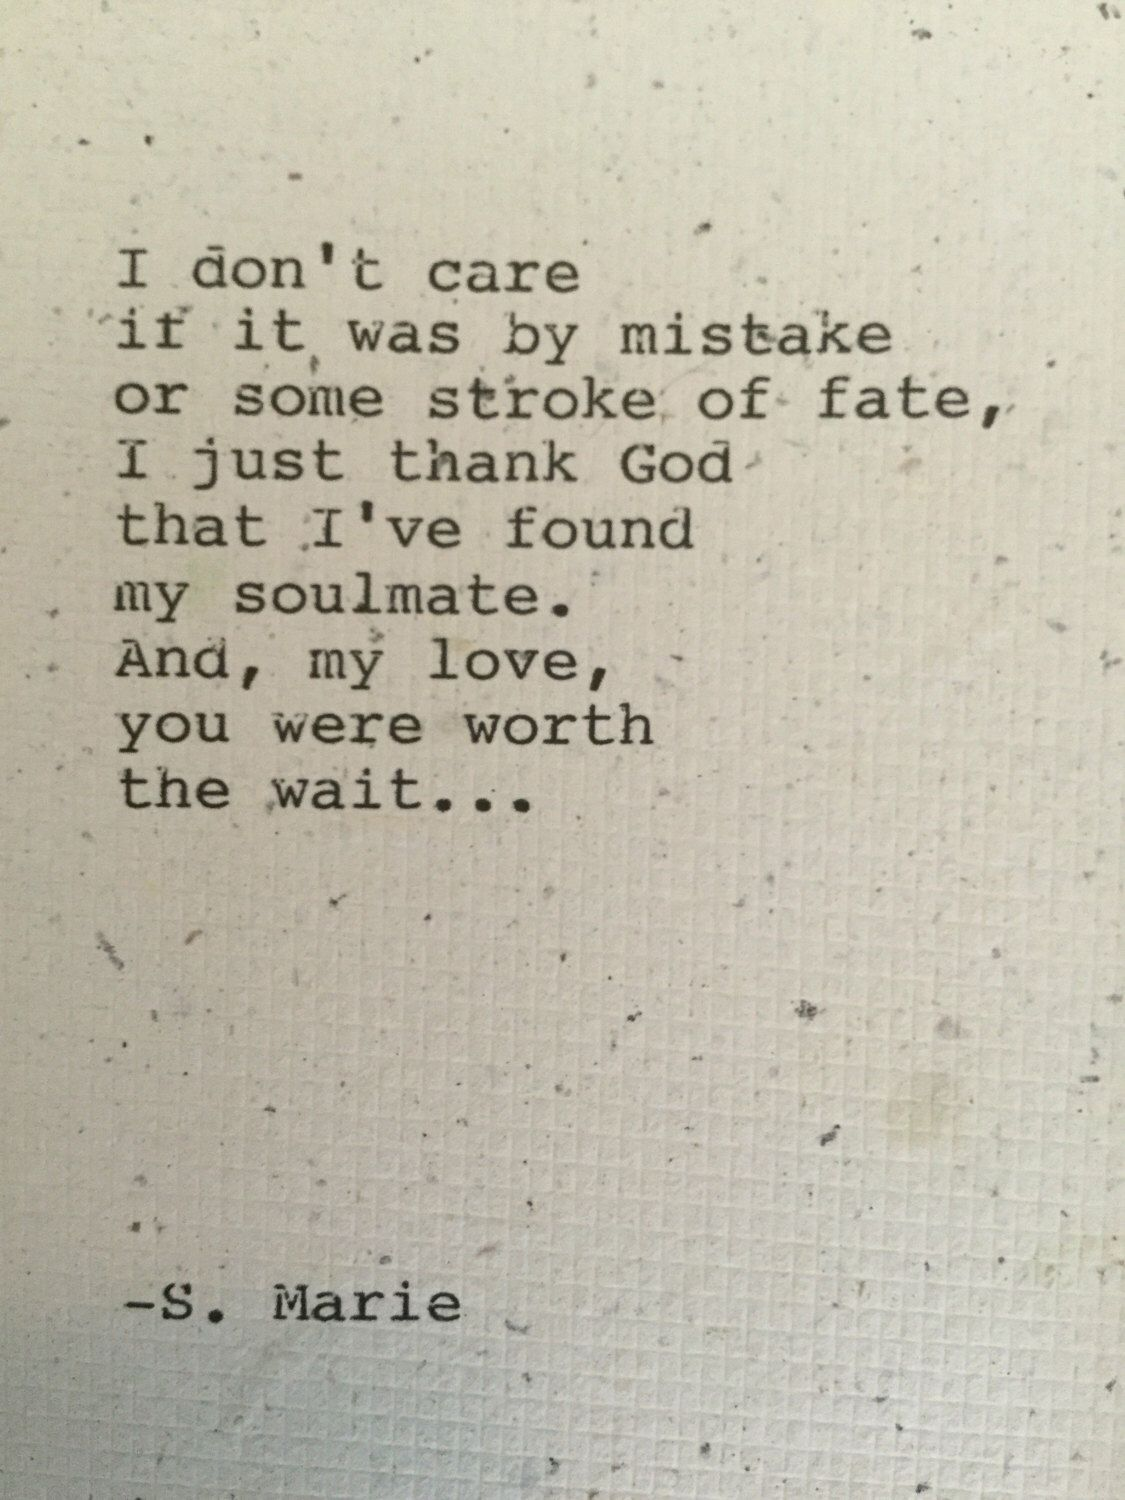 Pin By Sharnelle Cooper On Etsy Gifts Love Quotes Love Poems Poems